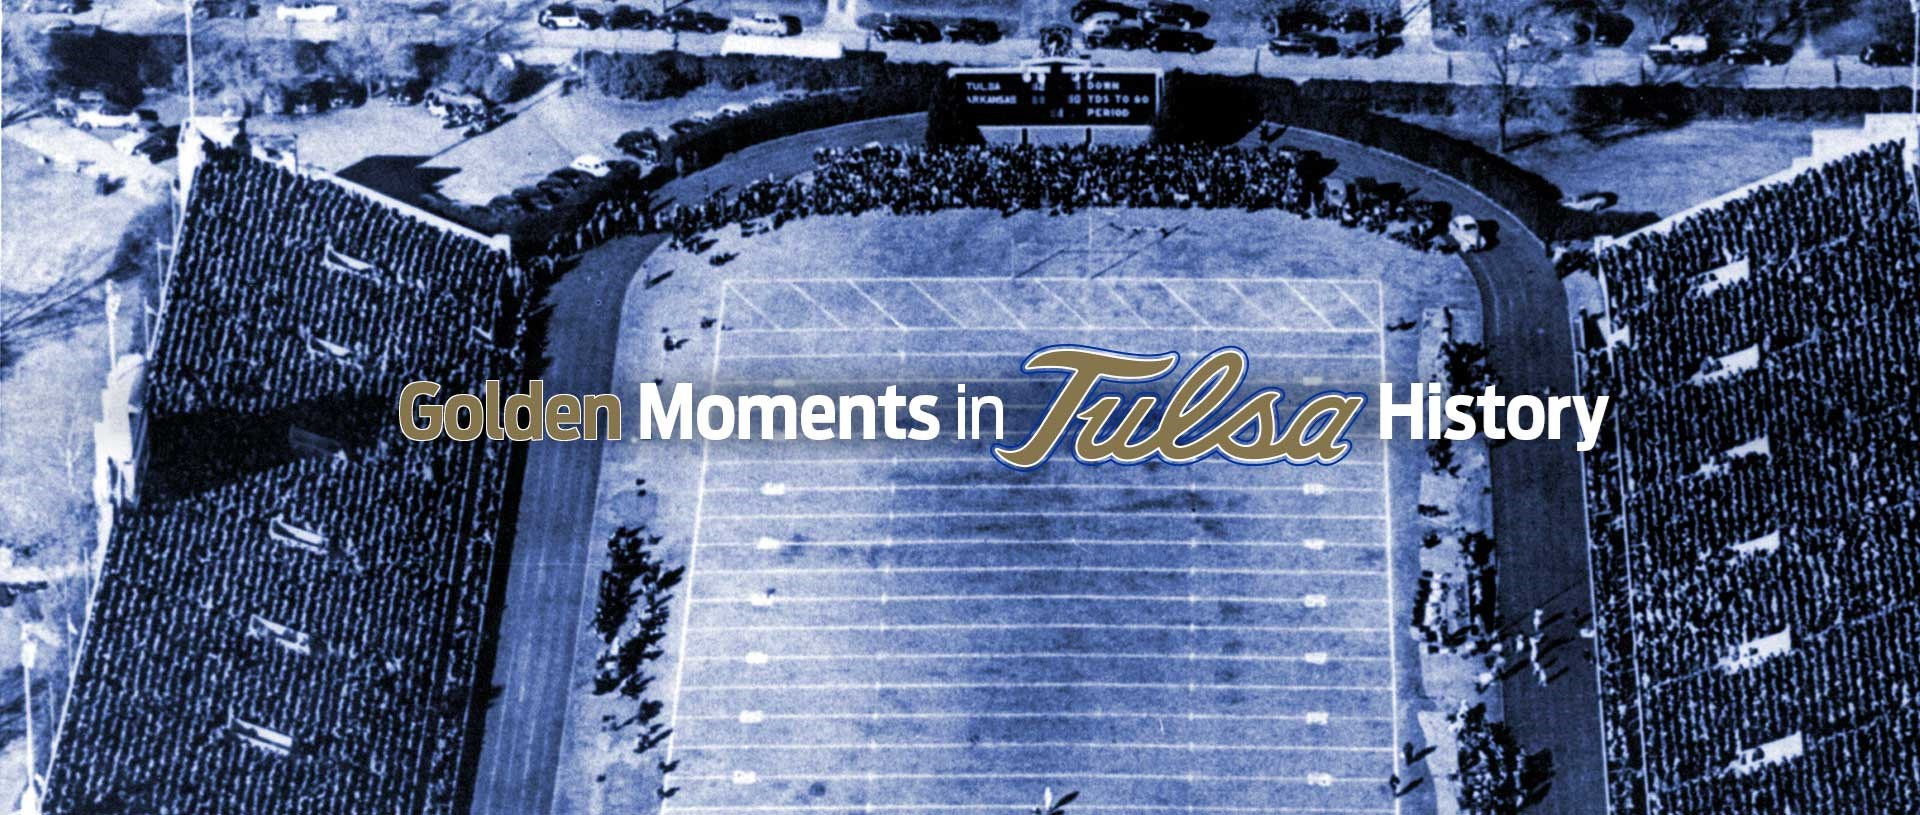 TU Golden Moments - FB - 1991 Southern Miss